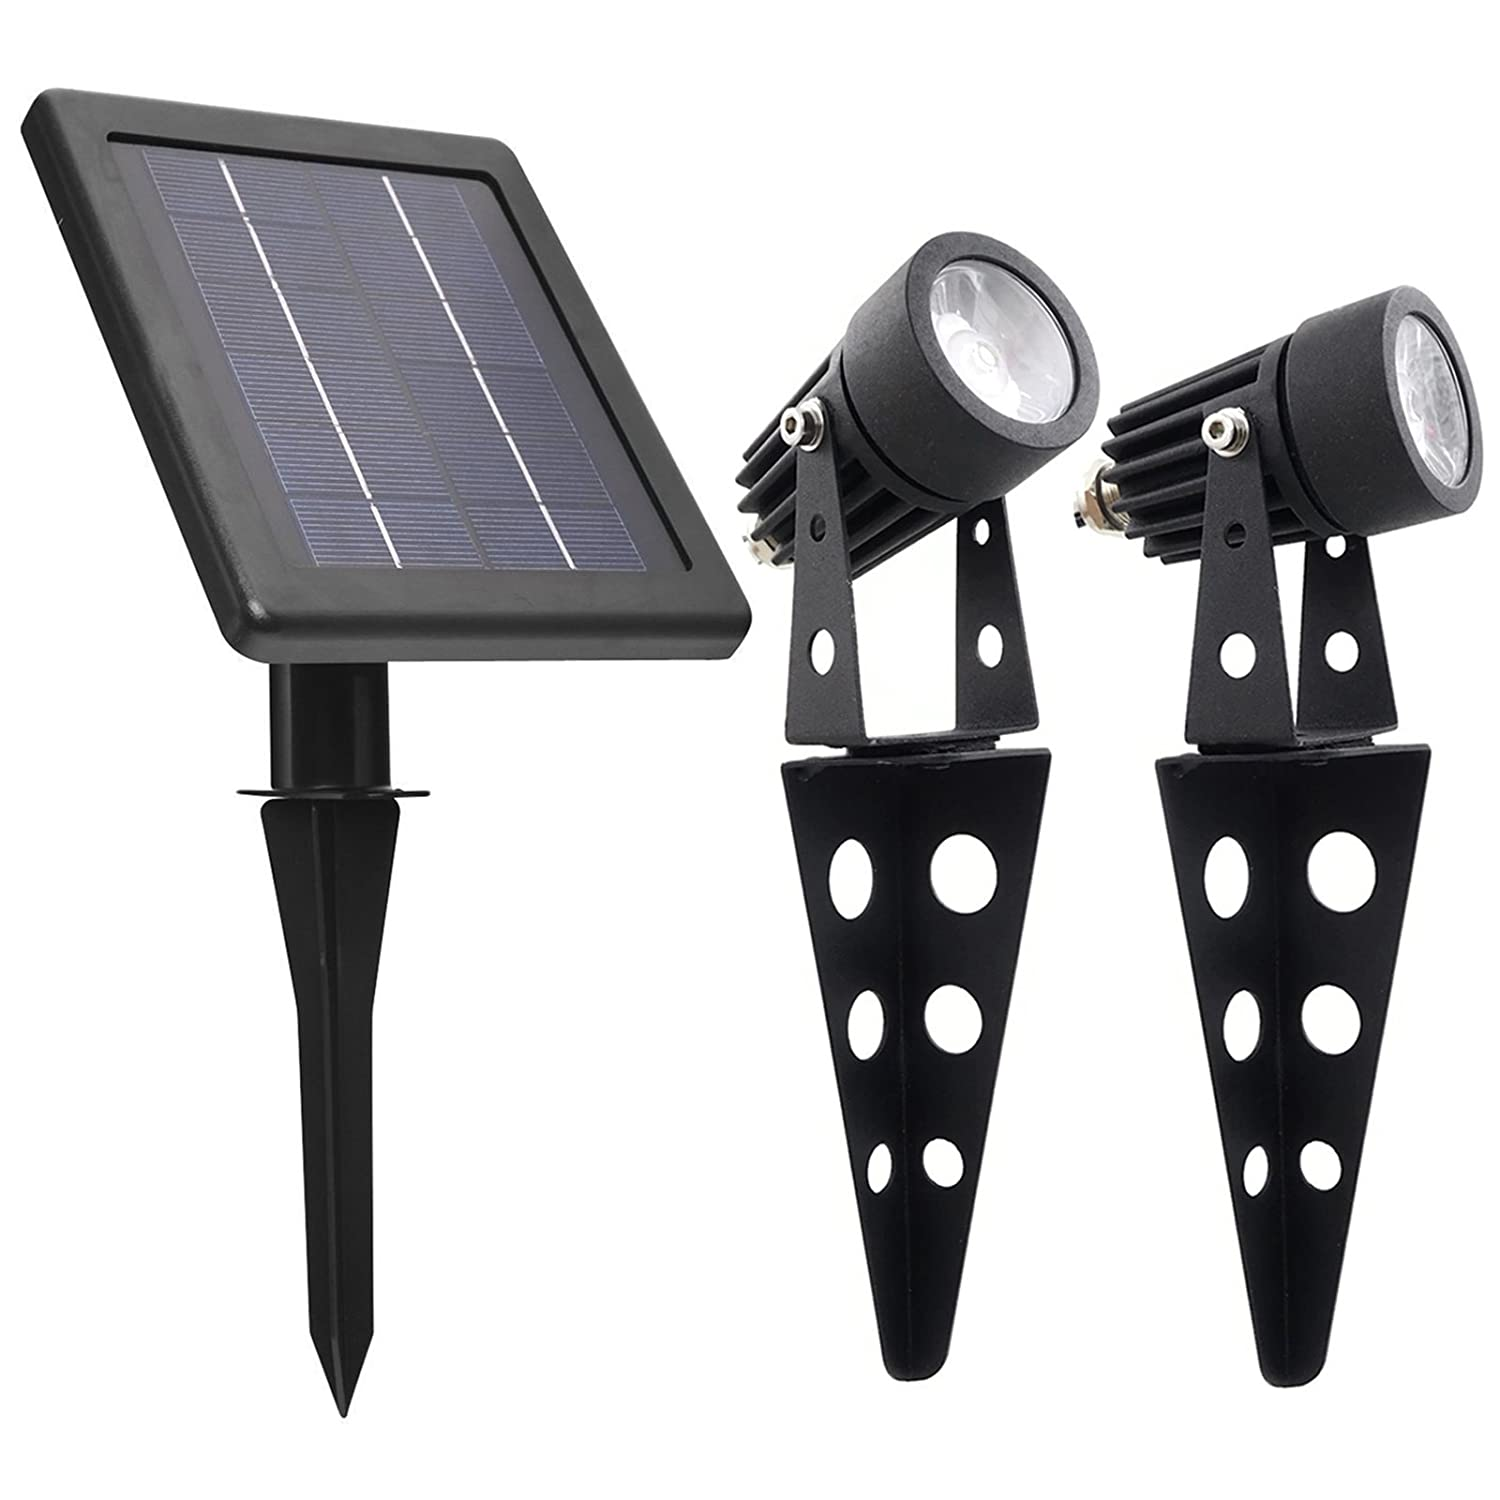 MINI 50X Twin Solar-Powered Cast Aluminum Warm White LED Spotlight